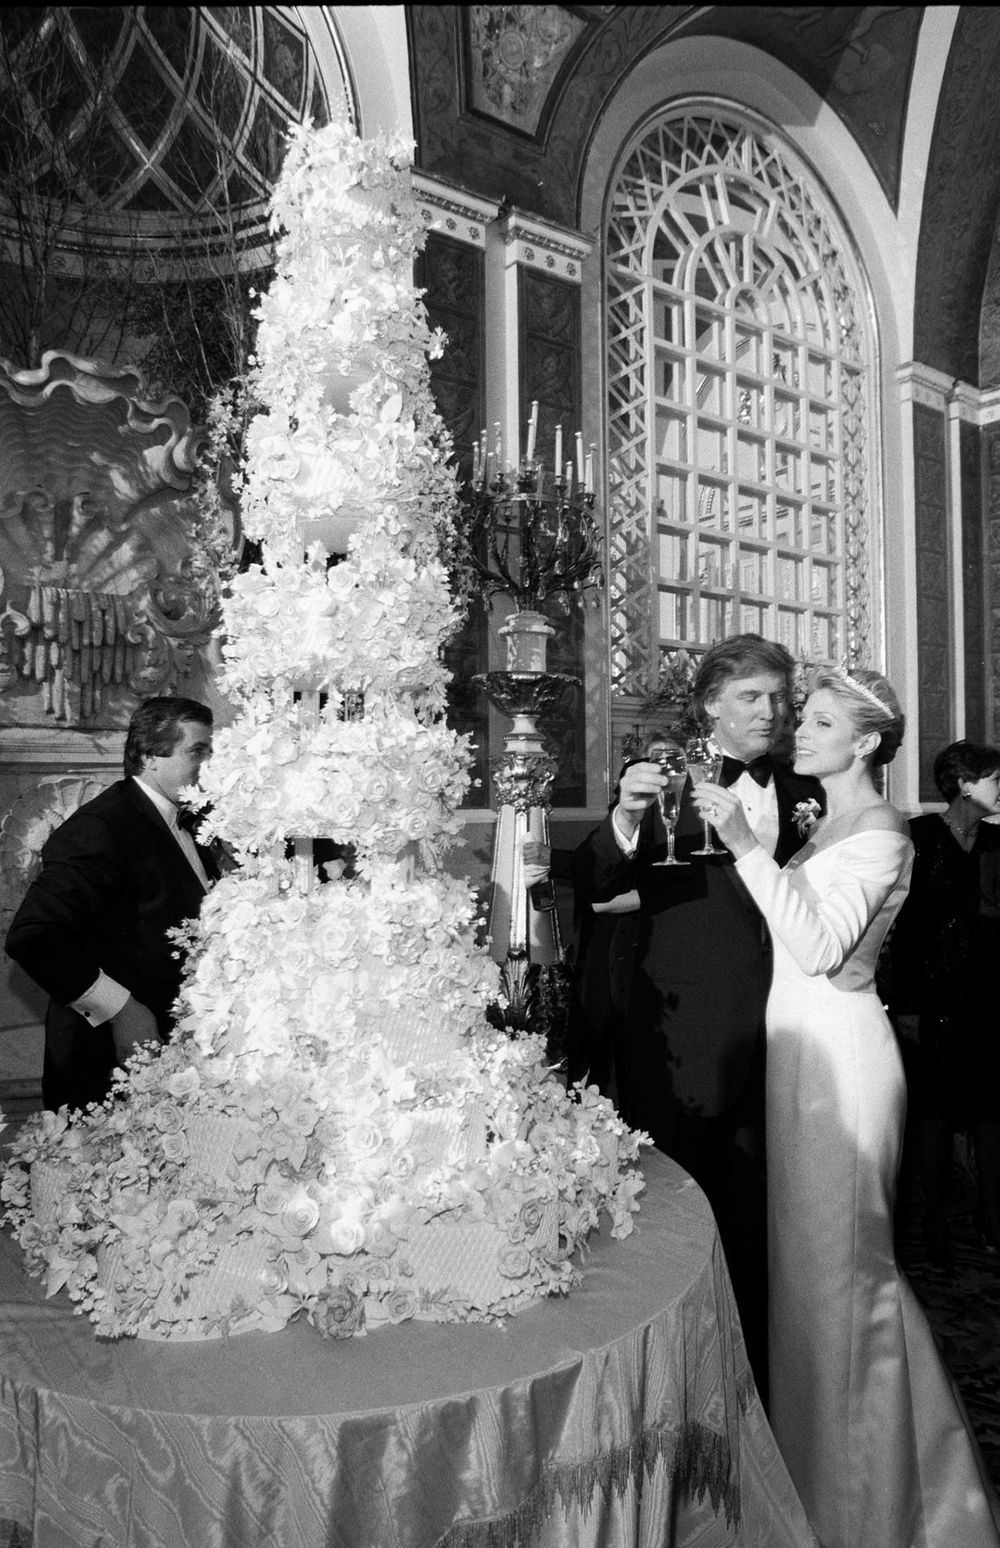 trump wedding maples 1993 #p#e#n#i#s# *v*a*g*i*n*a* wedding cake muhahahahahahahahaha rich idiots